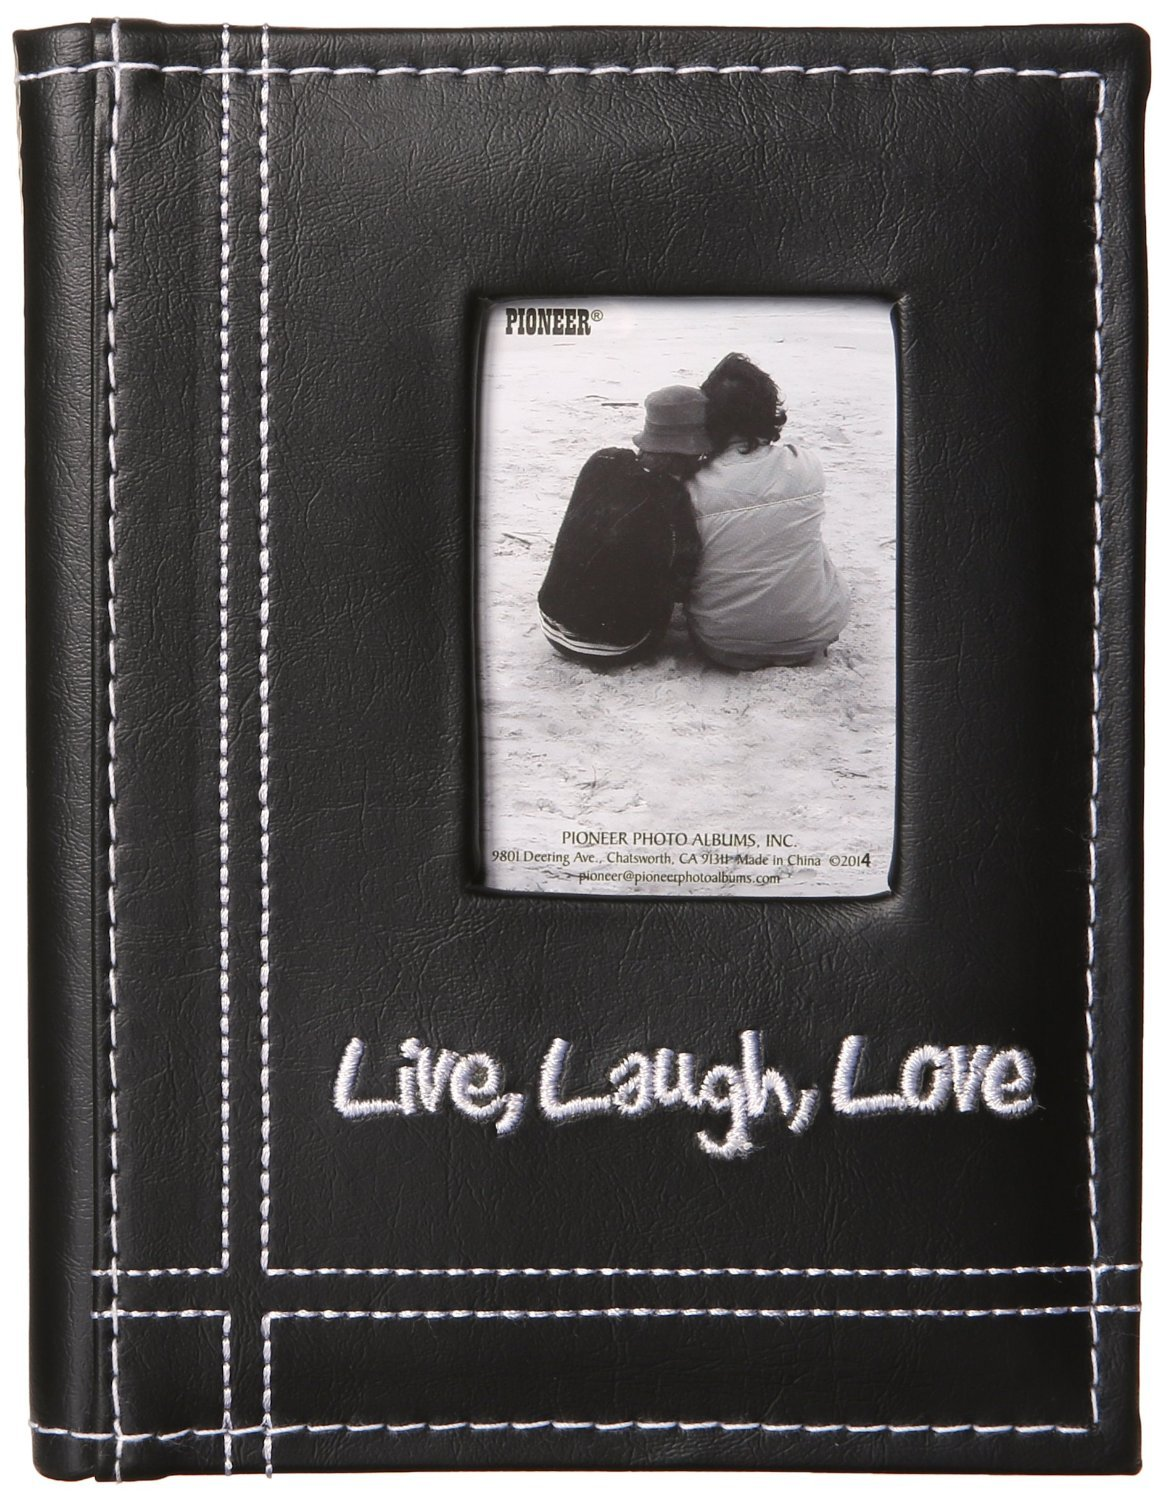 Pioneer LLL46 Live Laugh Love Embroidered Frame Cover Sewn Leatherette Mini Photo Album Black